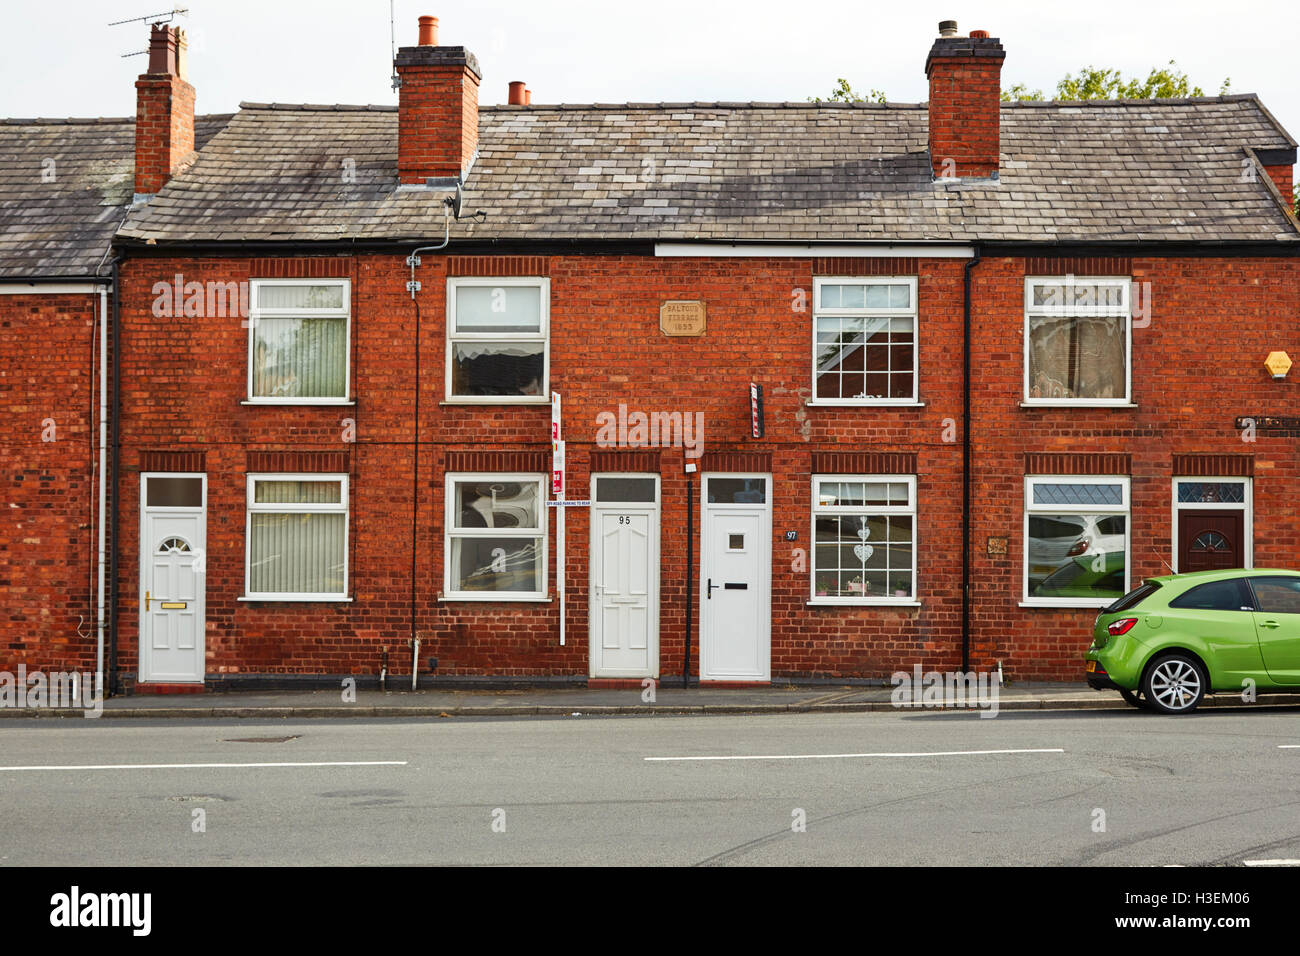 Balfour Terrace 1893 in Middlewich, Cheshire - Stock Image